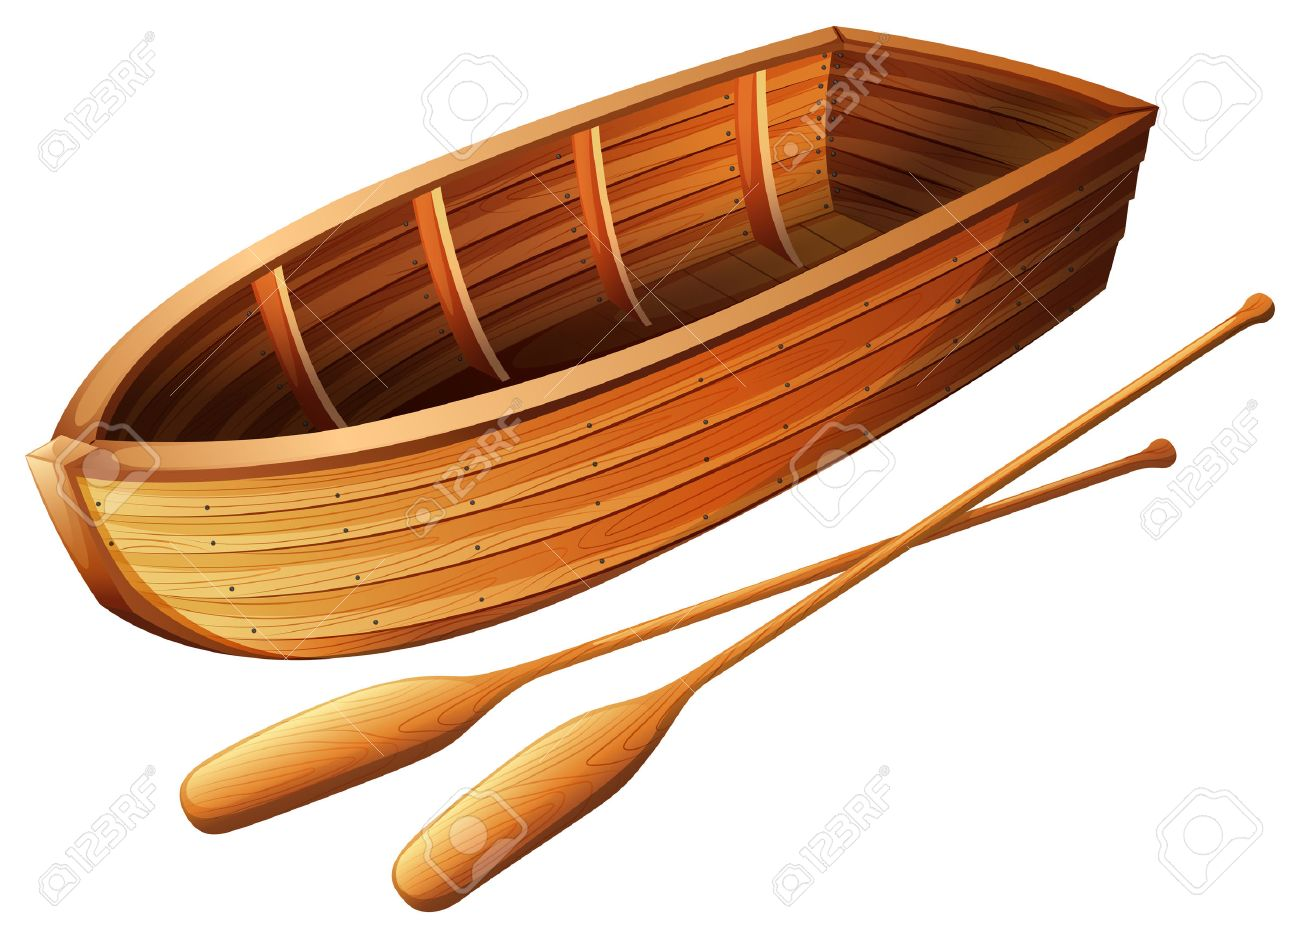 Wooden Boat On White Illustration Stock Vector